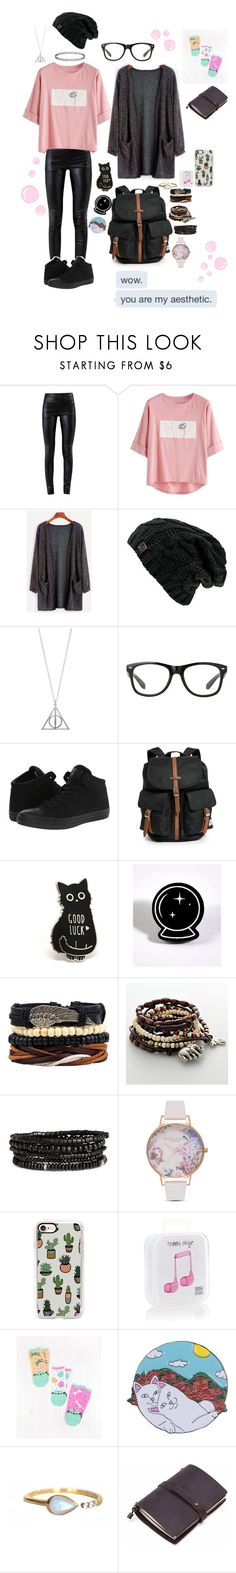 """You Are My Aesthetic"" by random-spacepal ❤ liked on Polyvore featuring Helmut Lang, Converse, Herschel Supply Co., Witch Worldwide, Mudd, Olivia Burton, Casetify, Happy Plugs, RIPNDIP and La Kaiser"